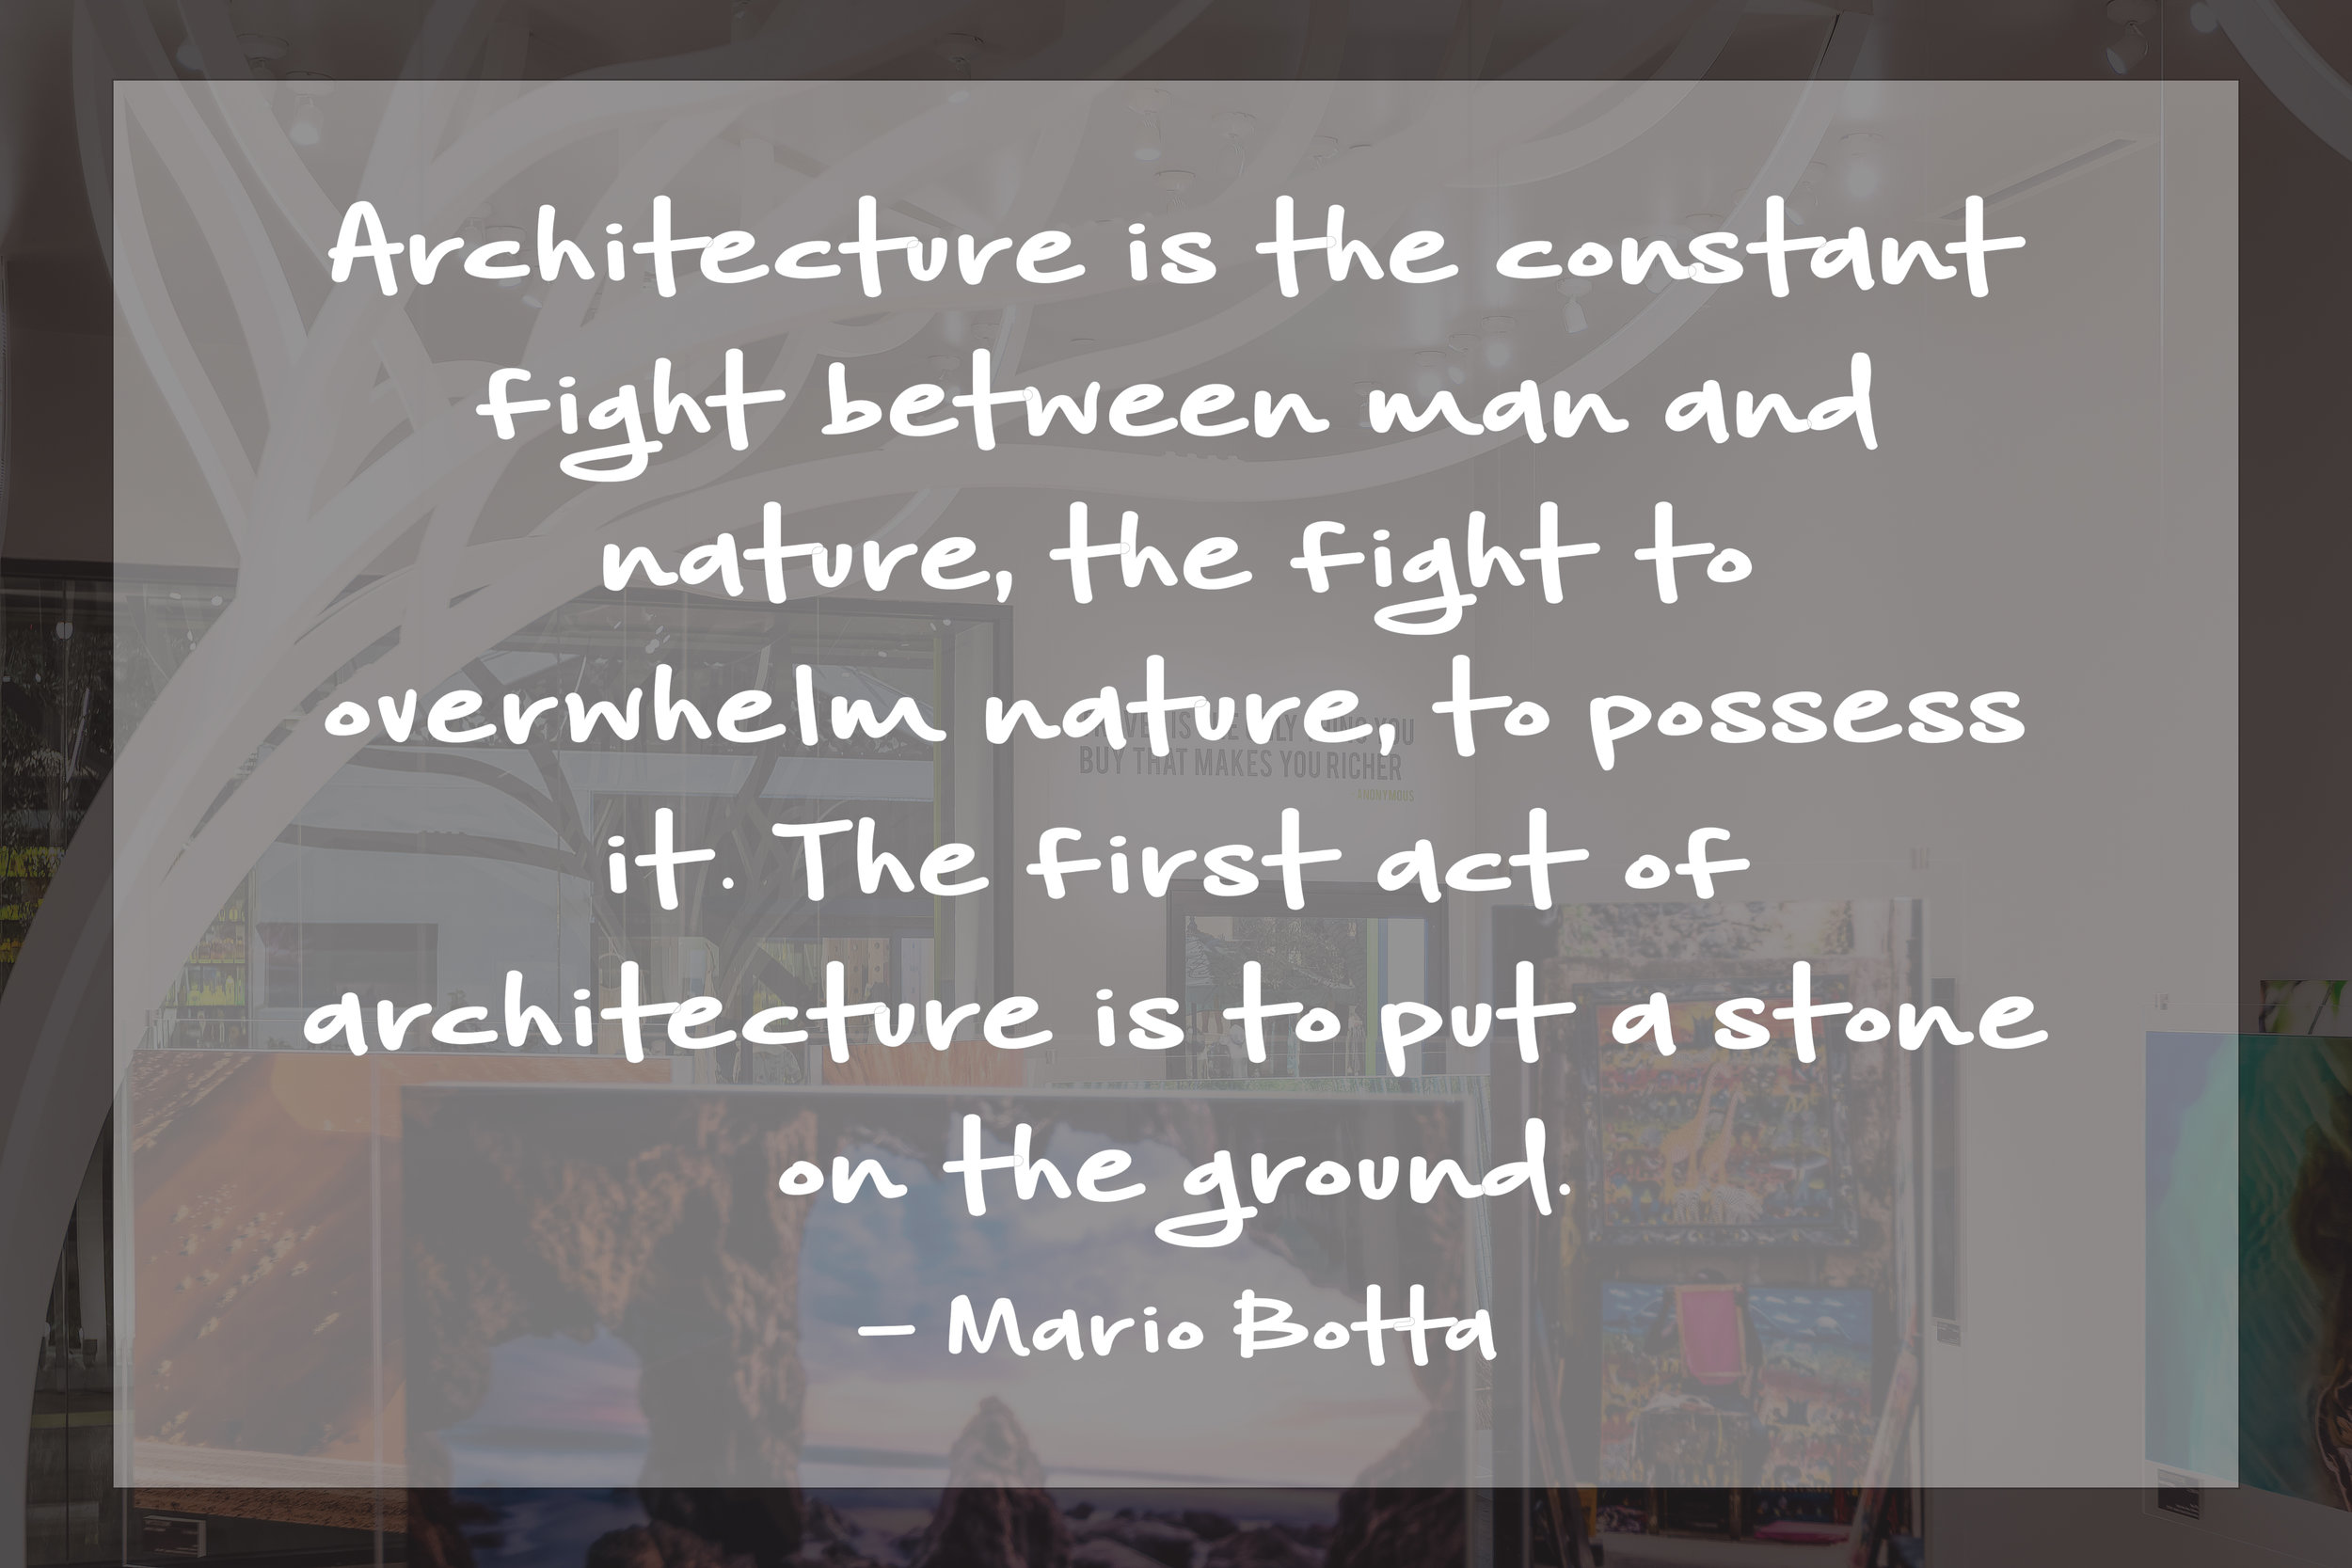 RELATIVITY ARCHITECTS QUOTE